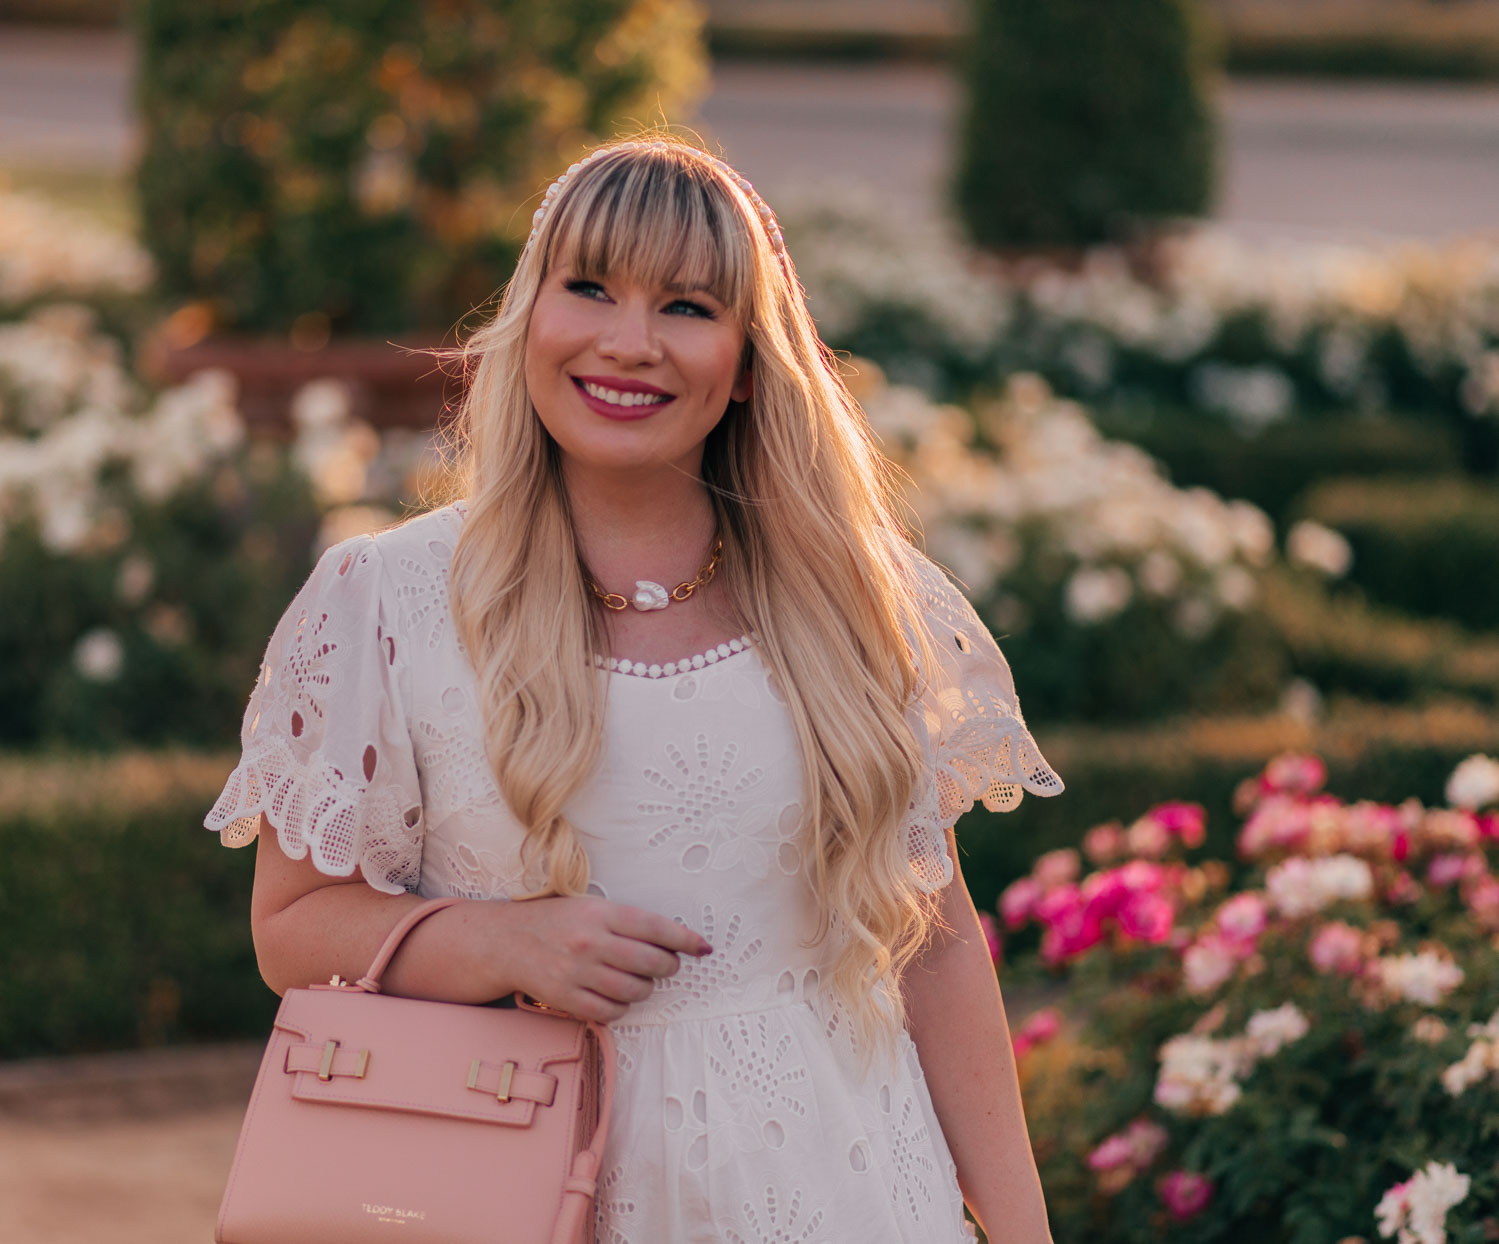 Feminine Fashion Blogger Elizabeth Hugen of Lizzie in Lace shares the perfect white summer dress from Chiwish and Sequin pearl and chain necklace